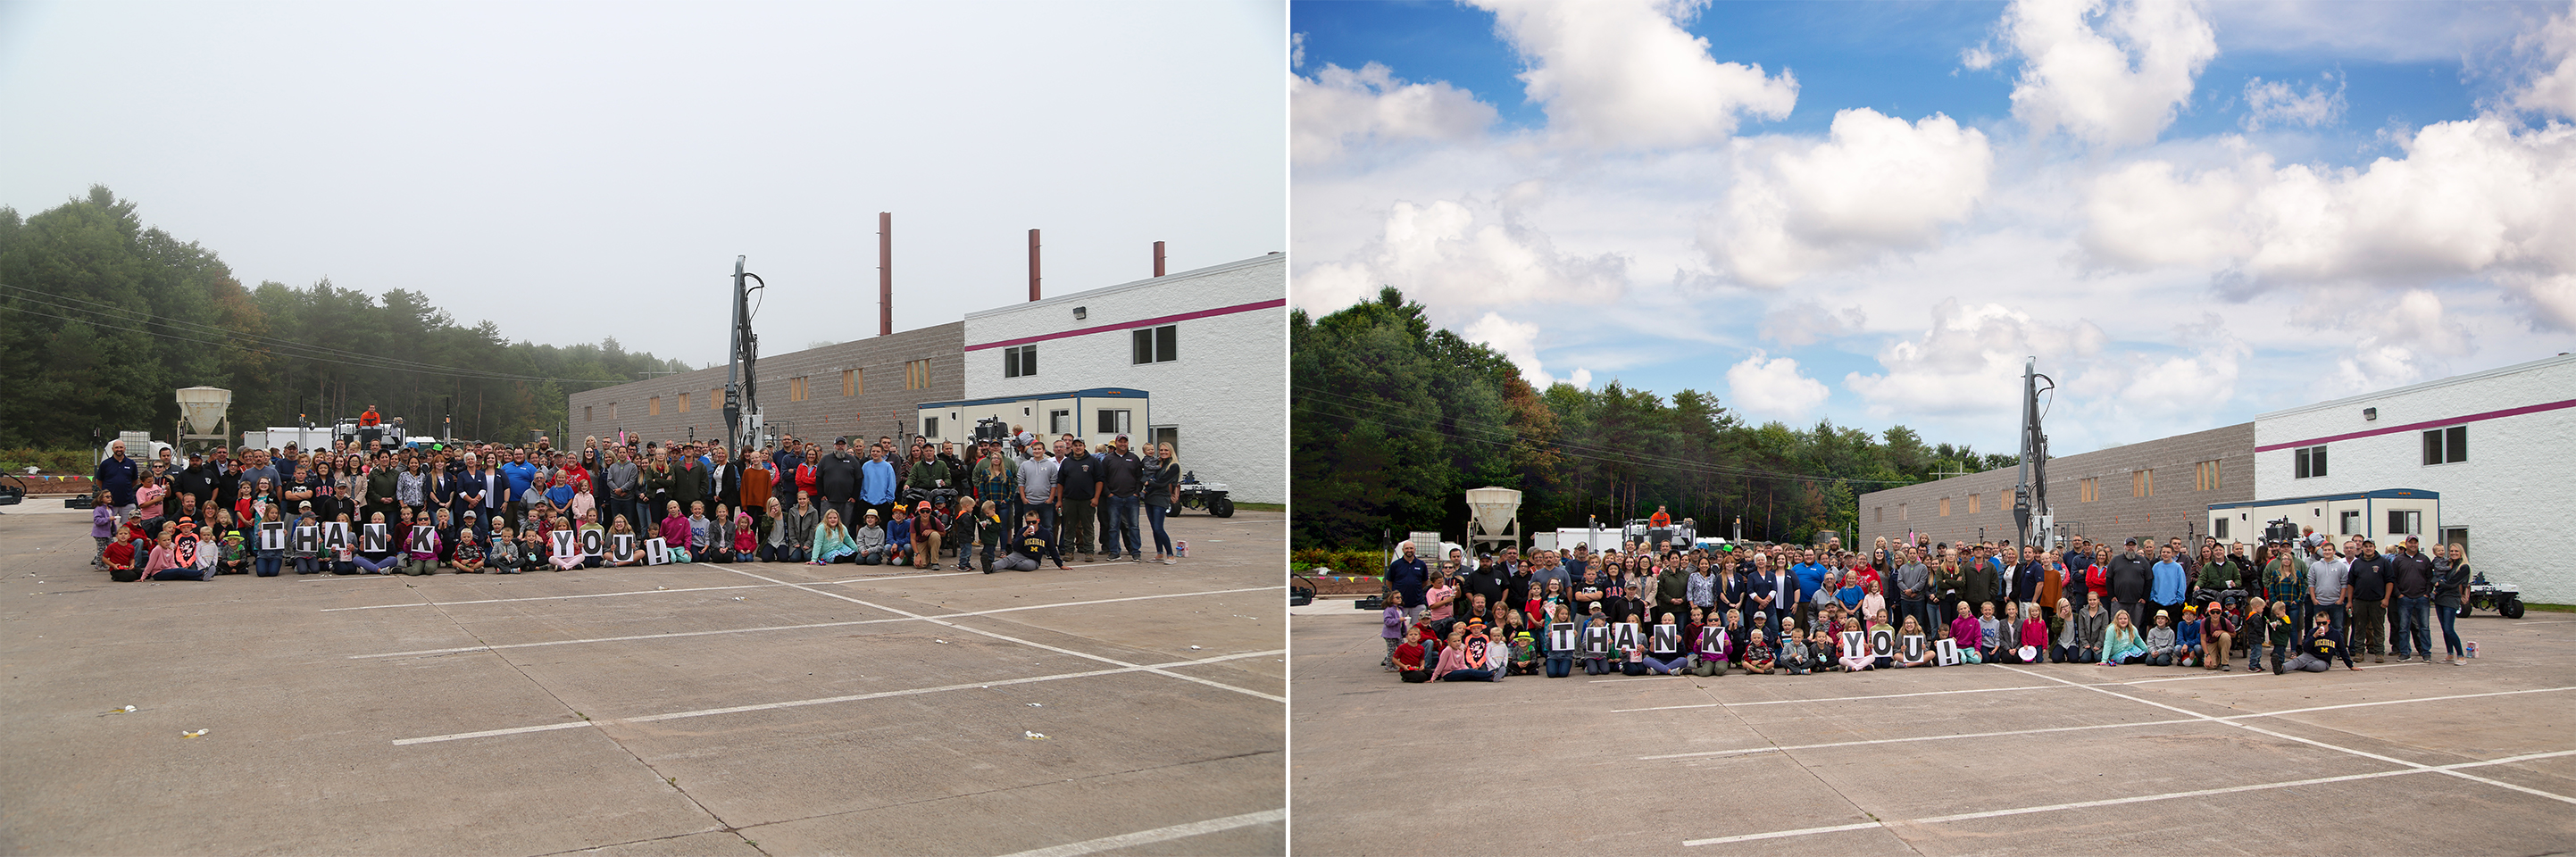 Somero 2019 Company Picnic Photo Before and After